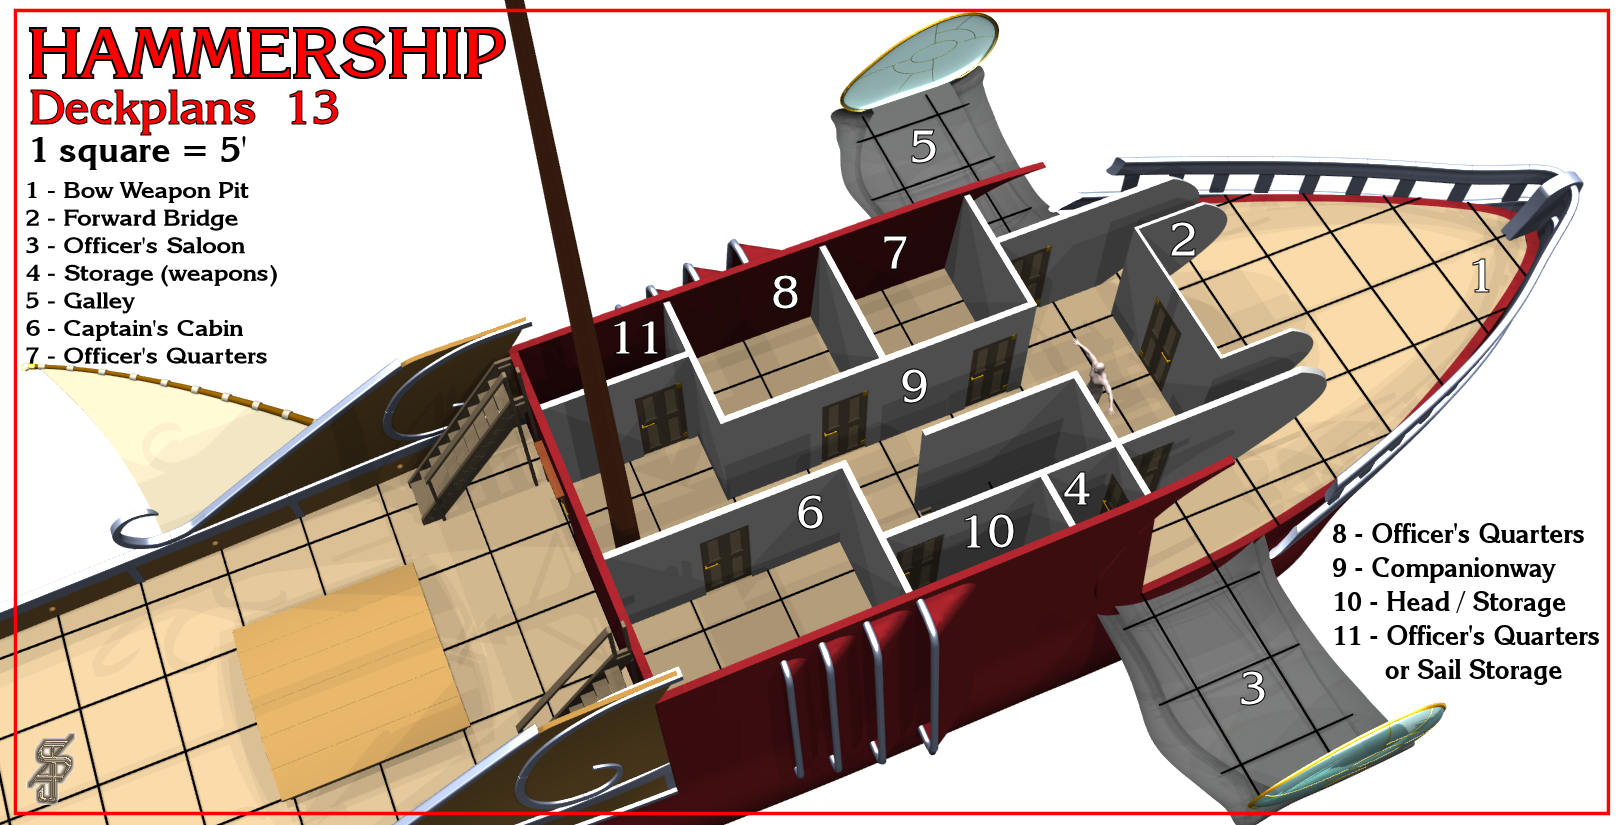 hammership_layout_13.png